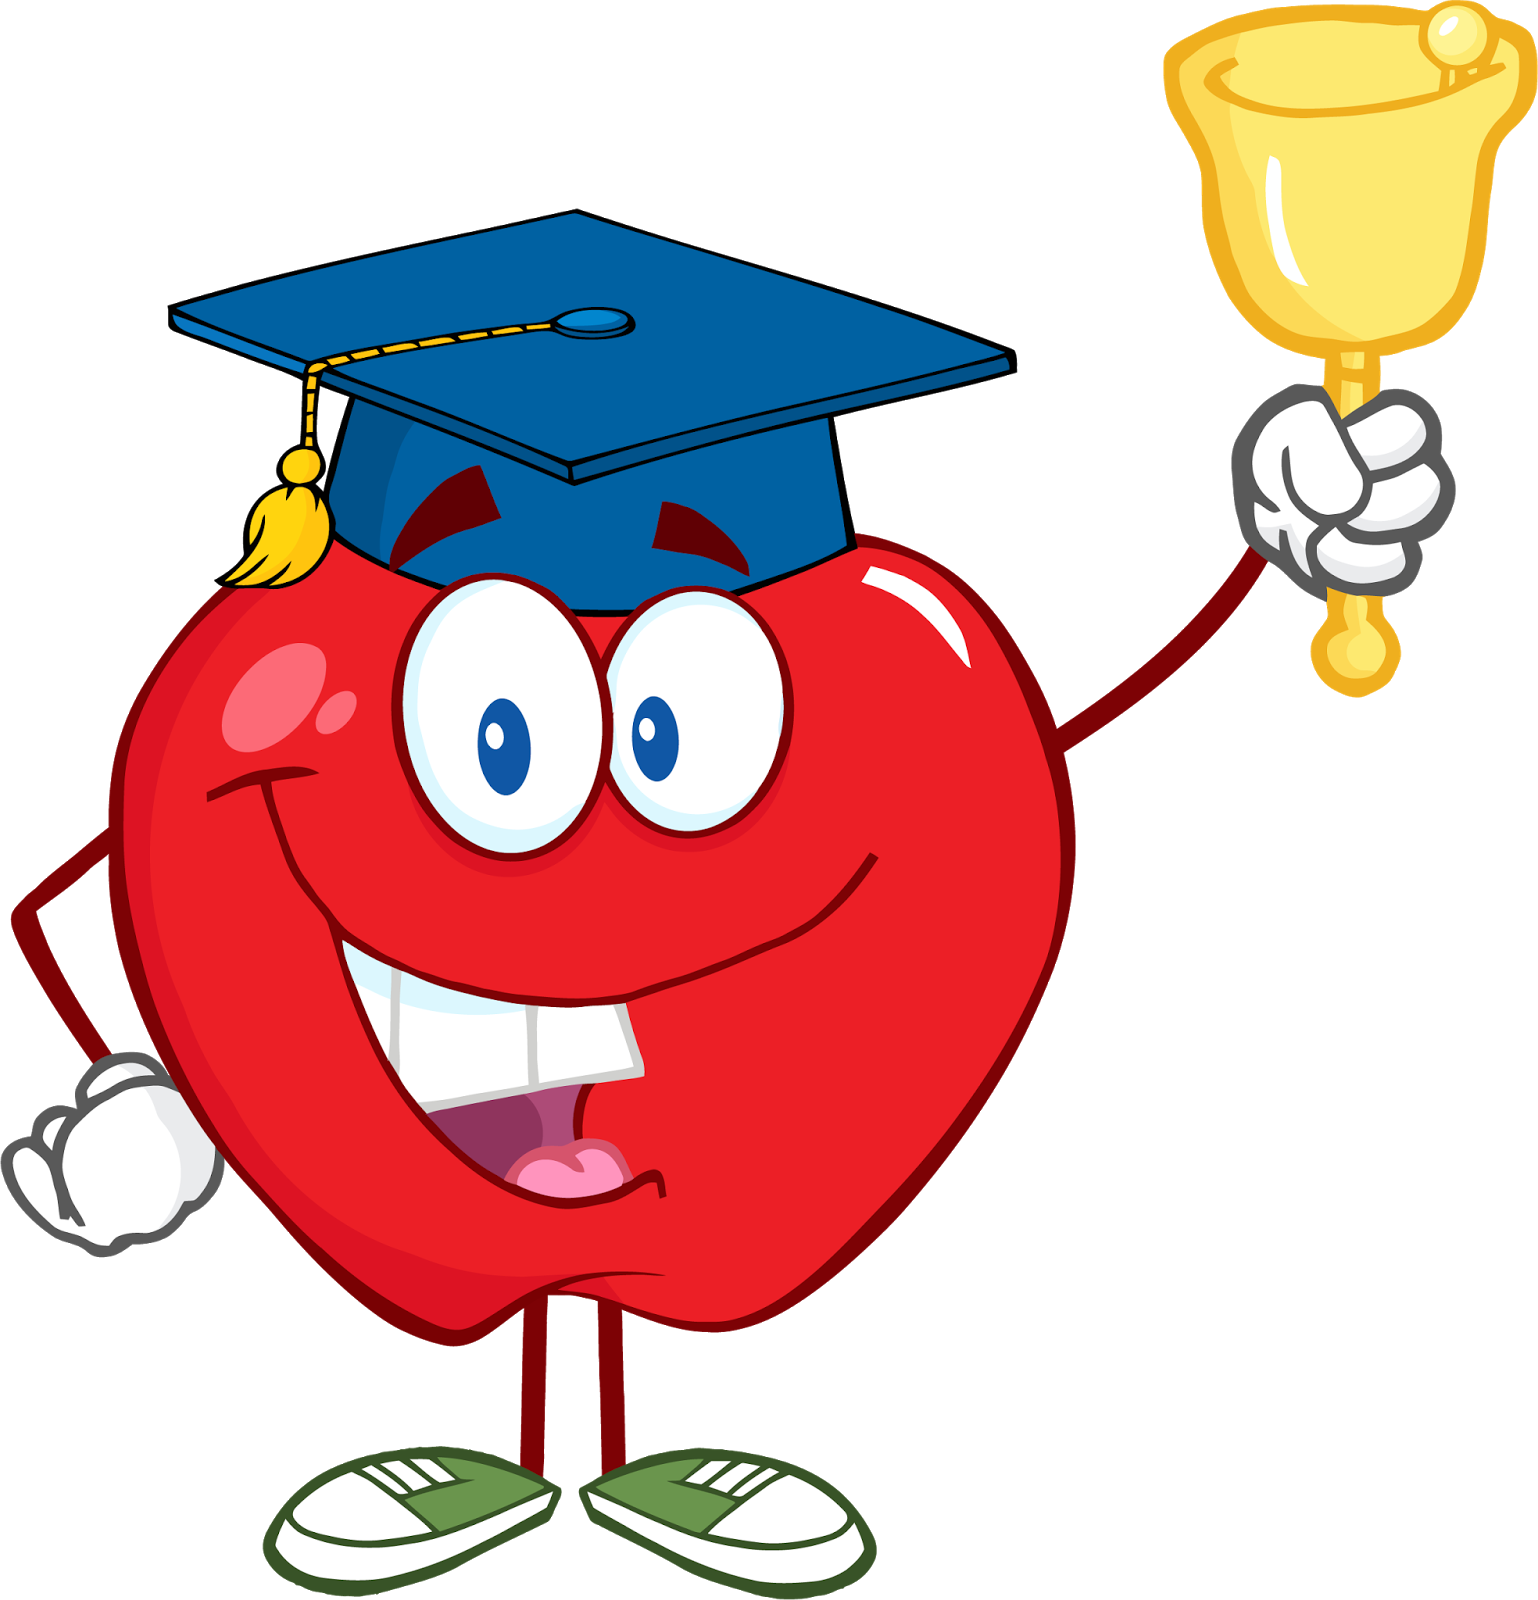 Free Clipart Bell Ringing - ClipArt Best